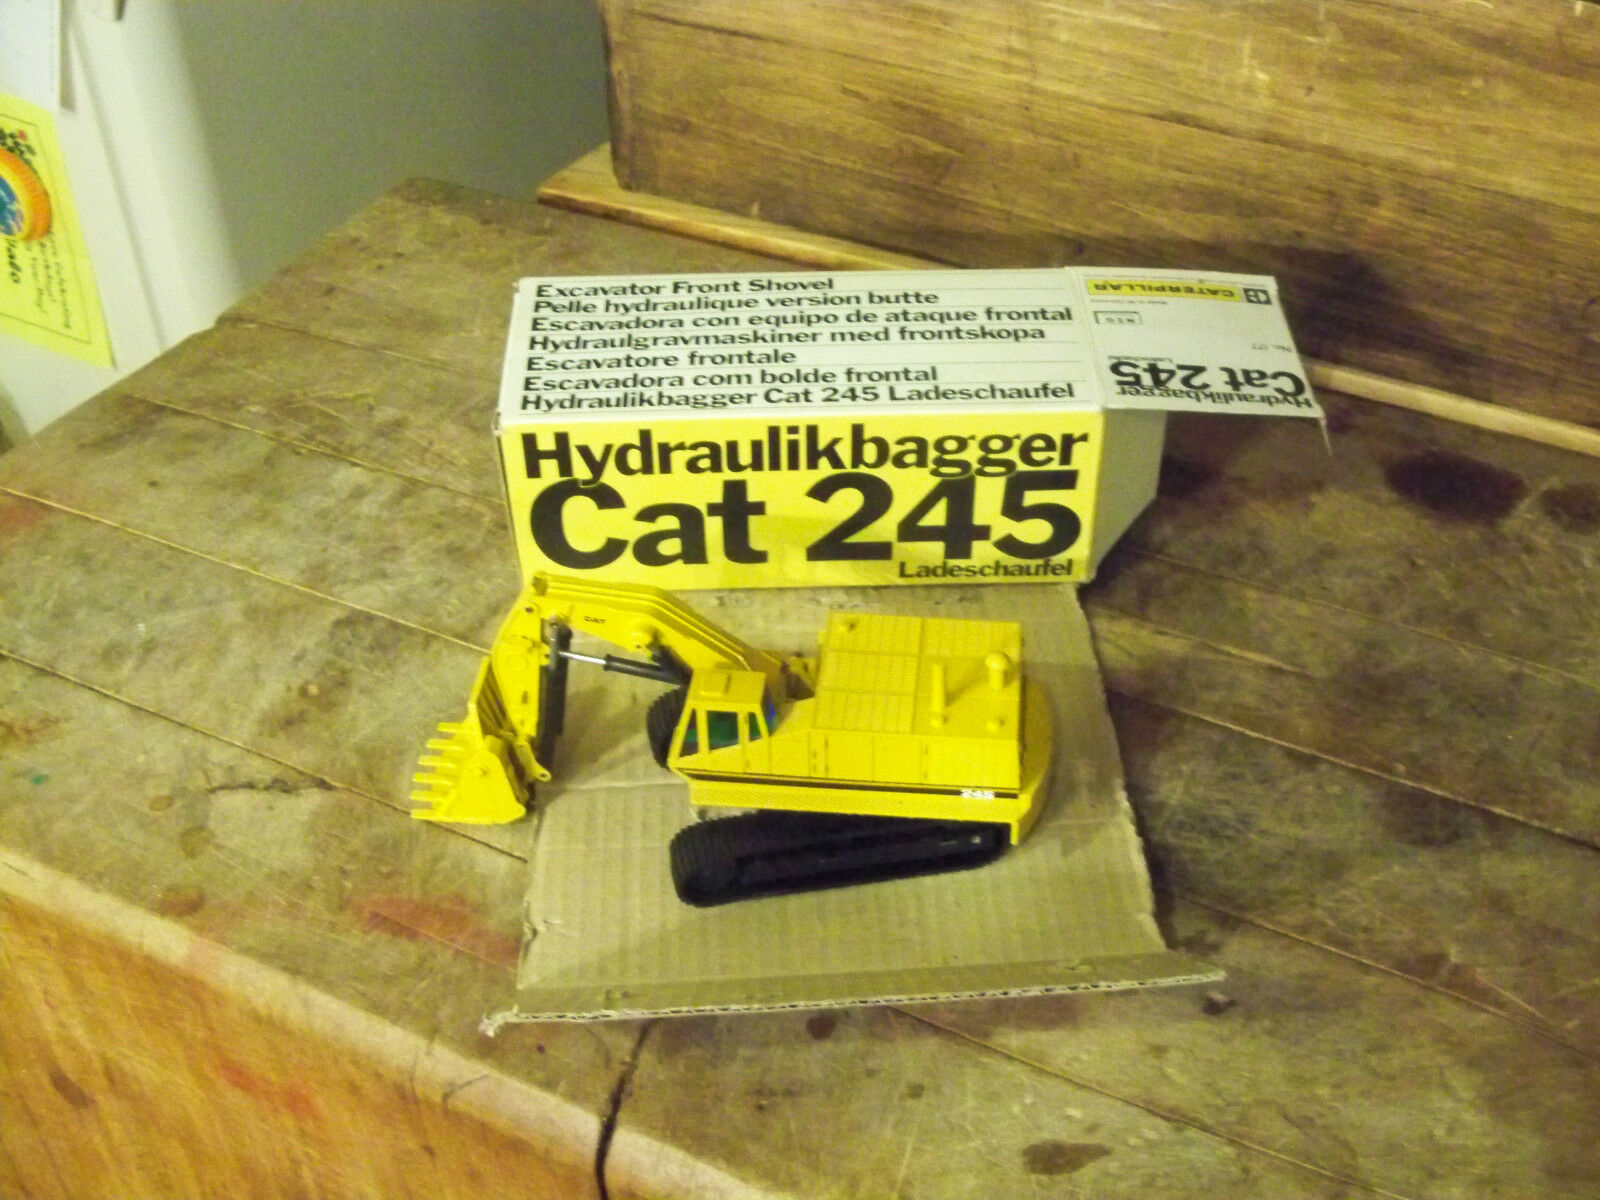 NZG No 177 Cat 245 (Caterpillar) Toy and Box are Mint German